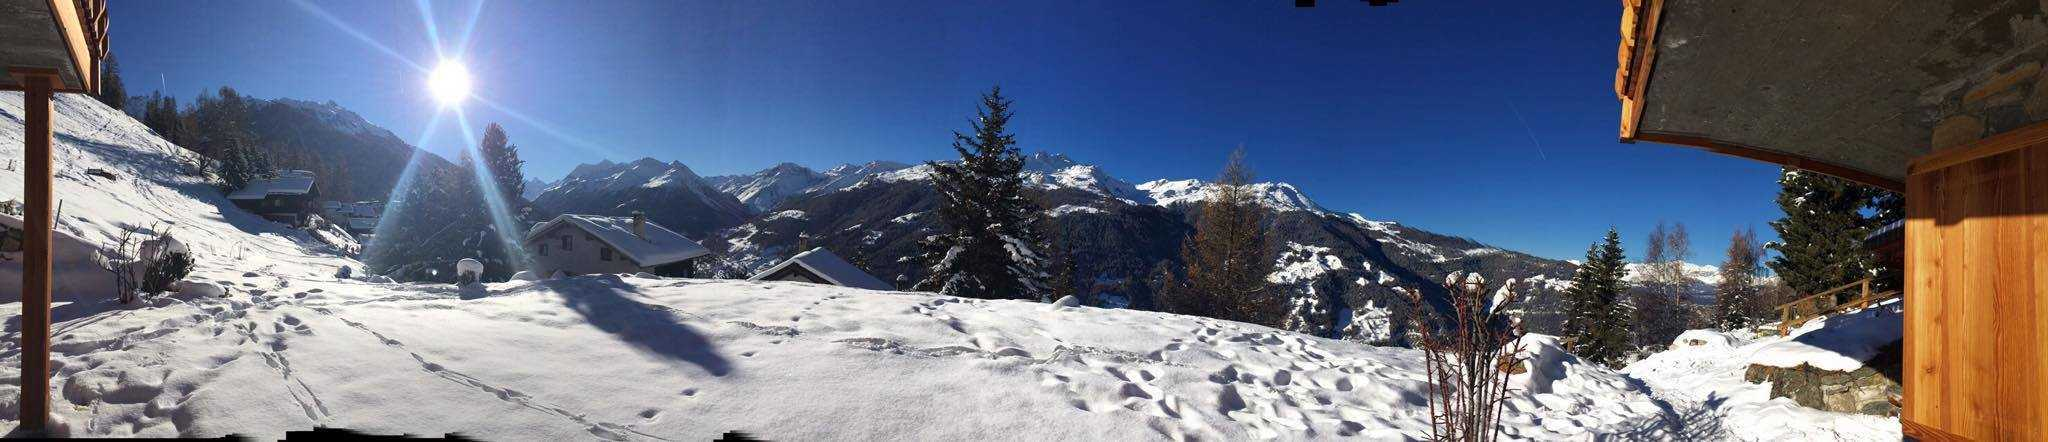 These are the views from Gstaad, where the Muller's finalised their design for the first Brellum watch - the Duobox.